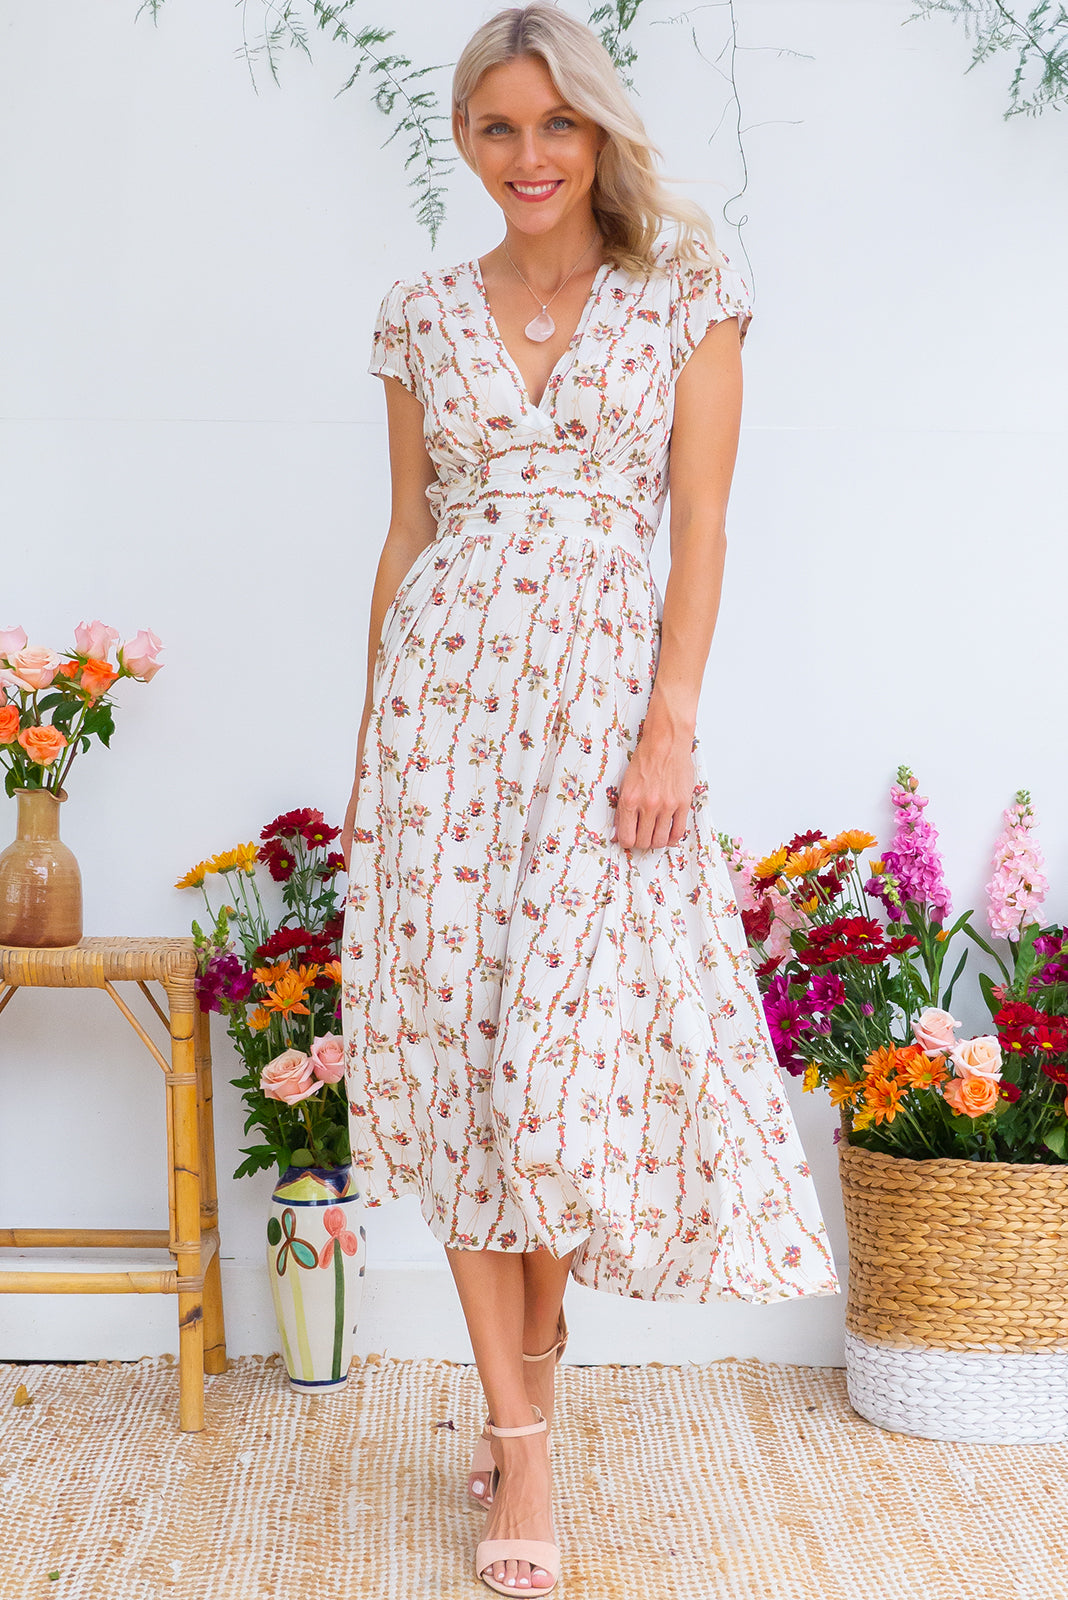 Lizzie Garlands Midi dress features a vintage inspired fitted basque waist and elasticated waist with a cap sleeve and deep v neck the fabric is a soft woven rayon in a soft white floral garland print